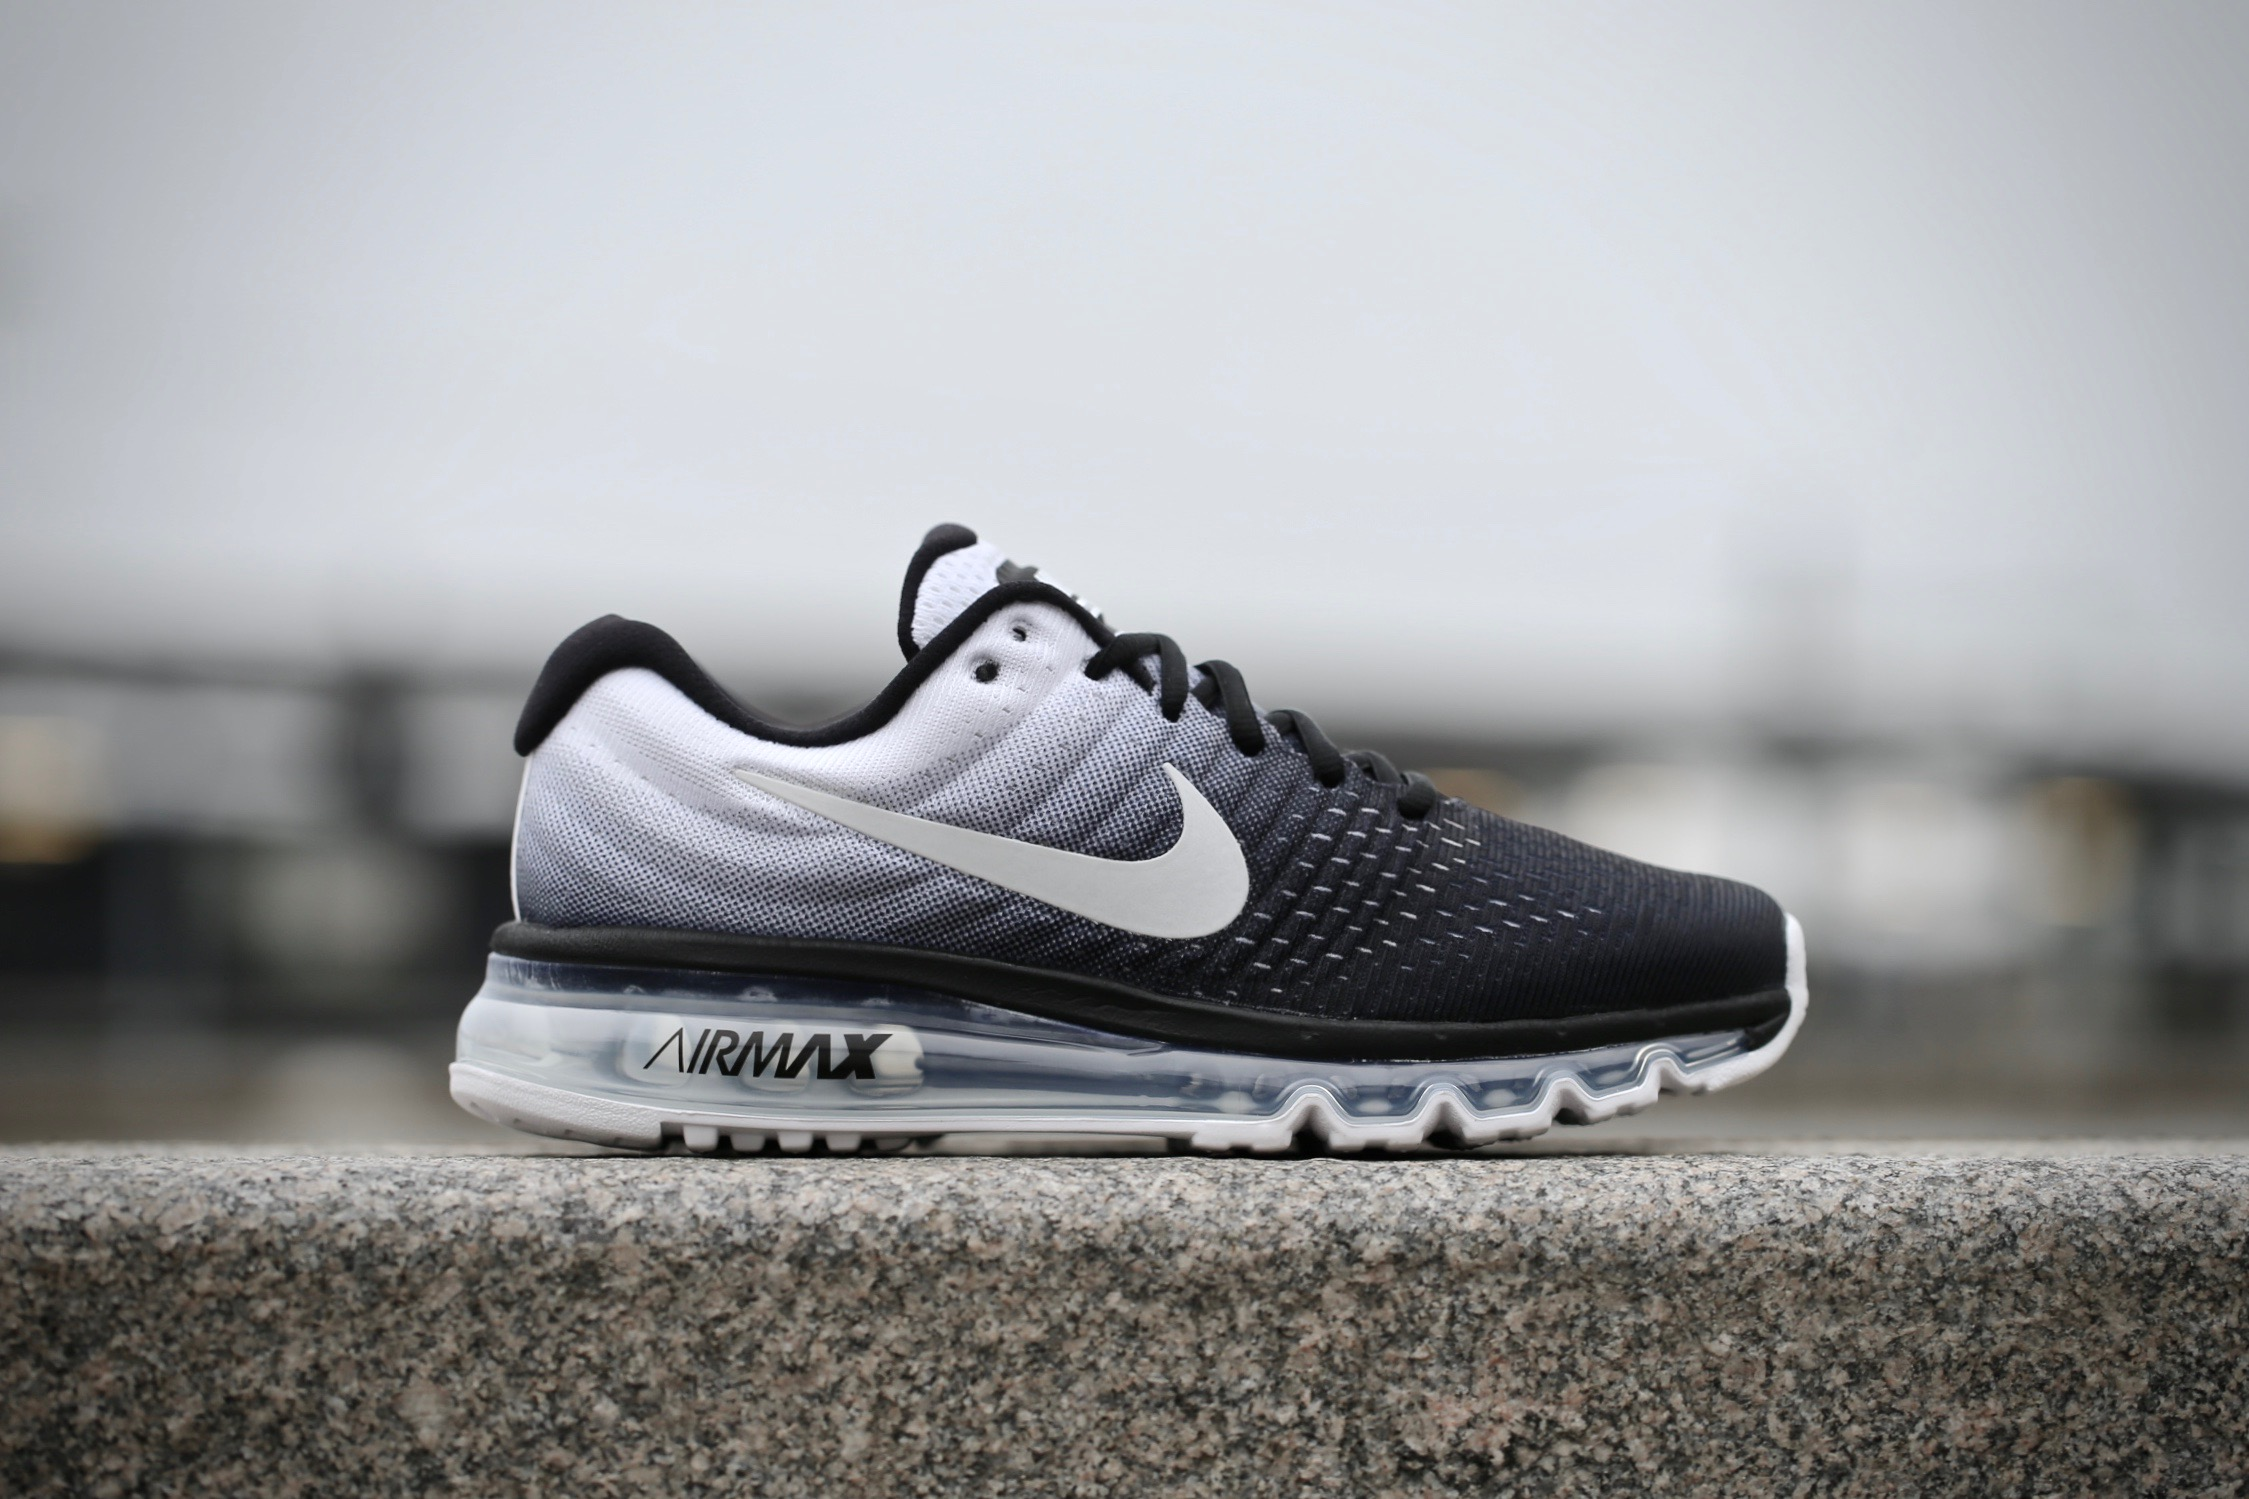 4c402f303220 Nike Wmns Air Max 2017 – Black   White – STASP